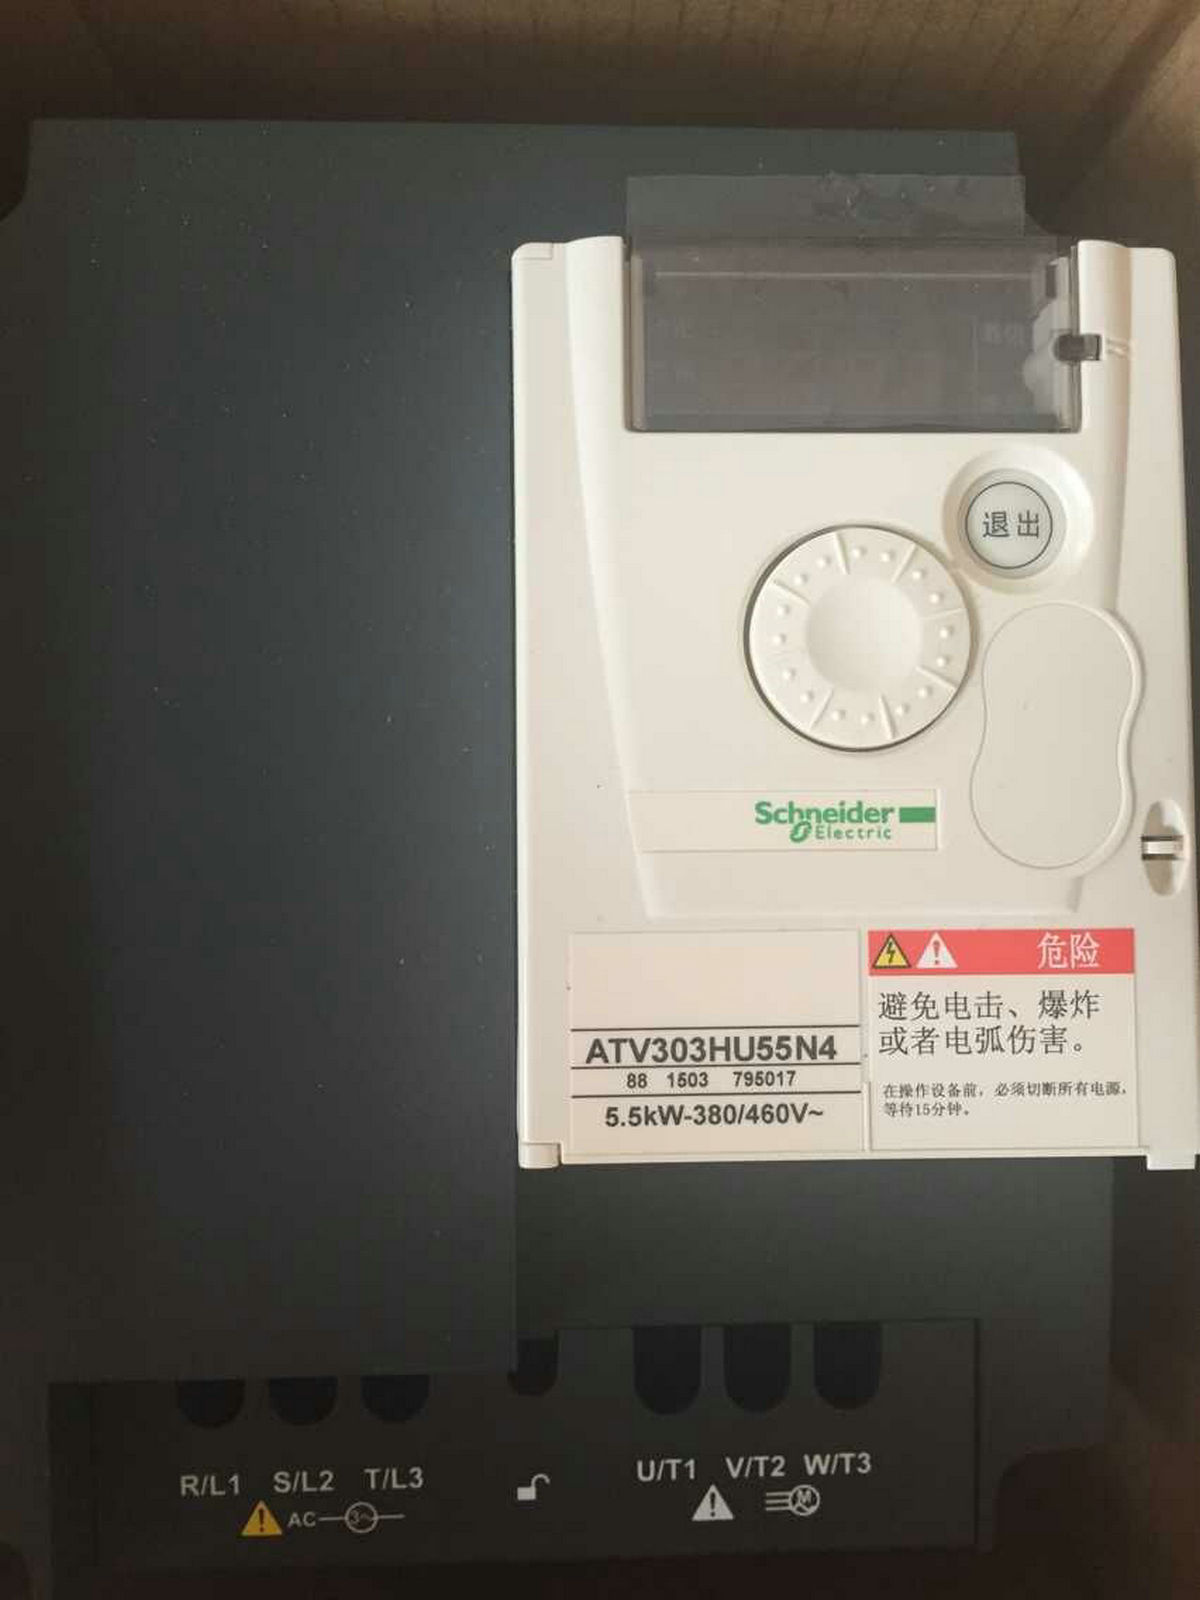 Schneider inverter 5.5kw ATV303HU55N4 spot genuine warranty for one year by atv 310 alternative